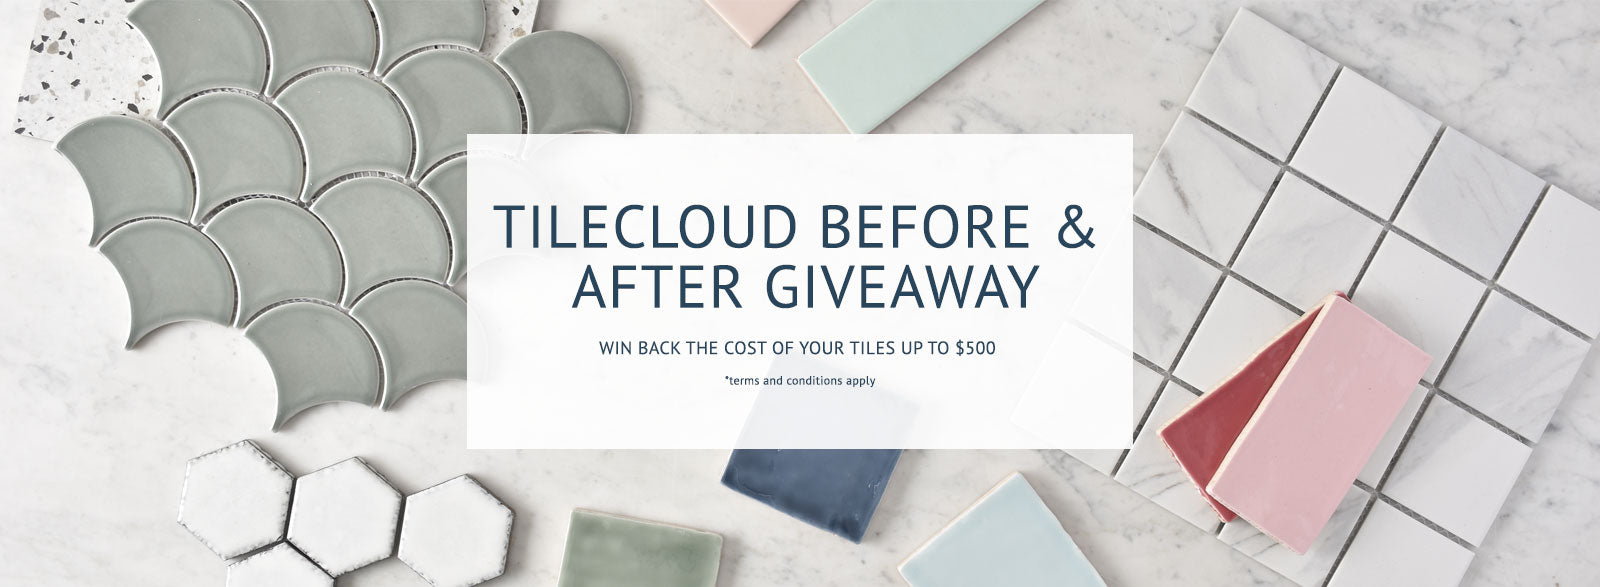 win back the cost of your tiles banner